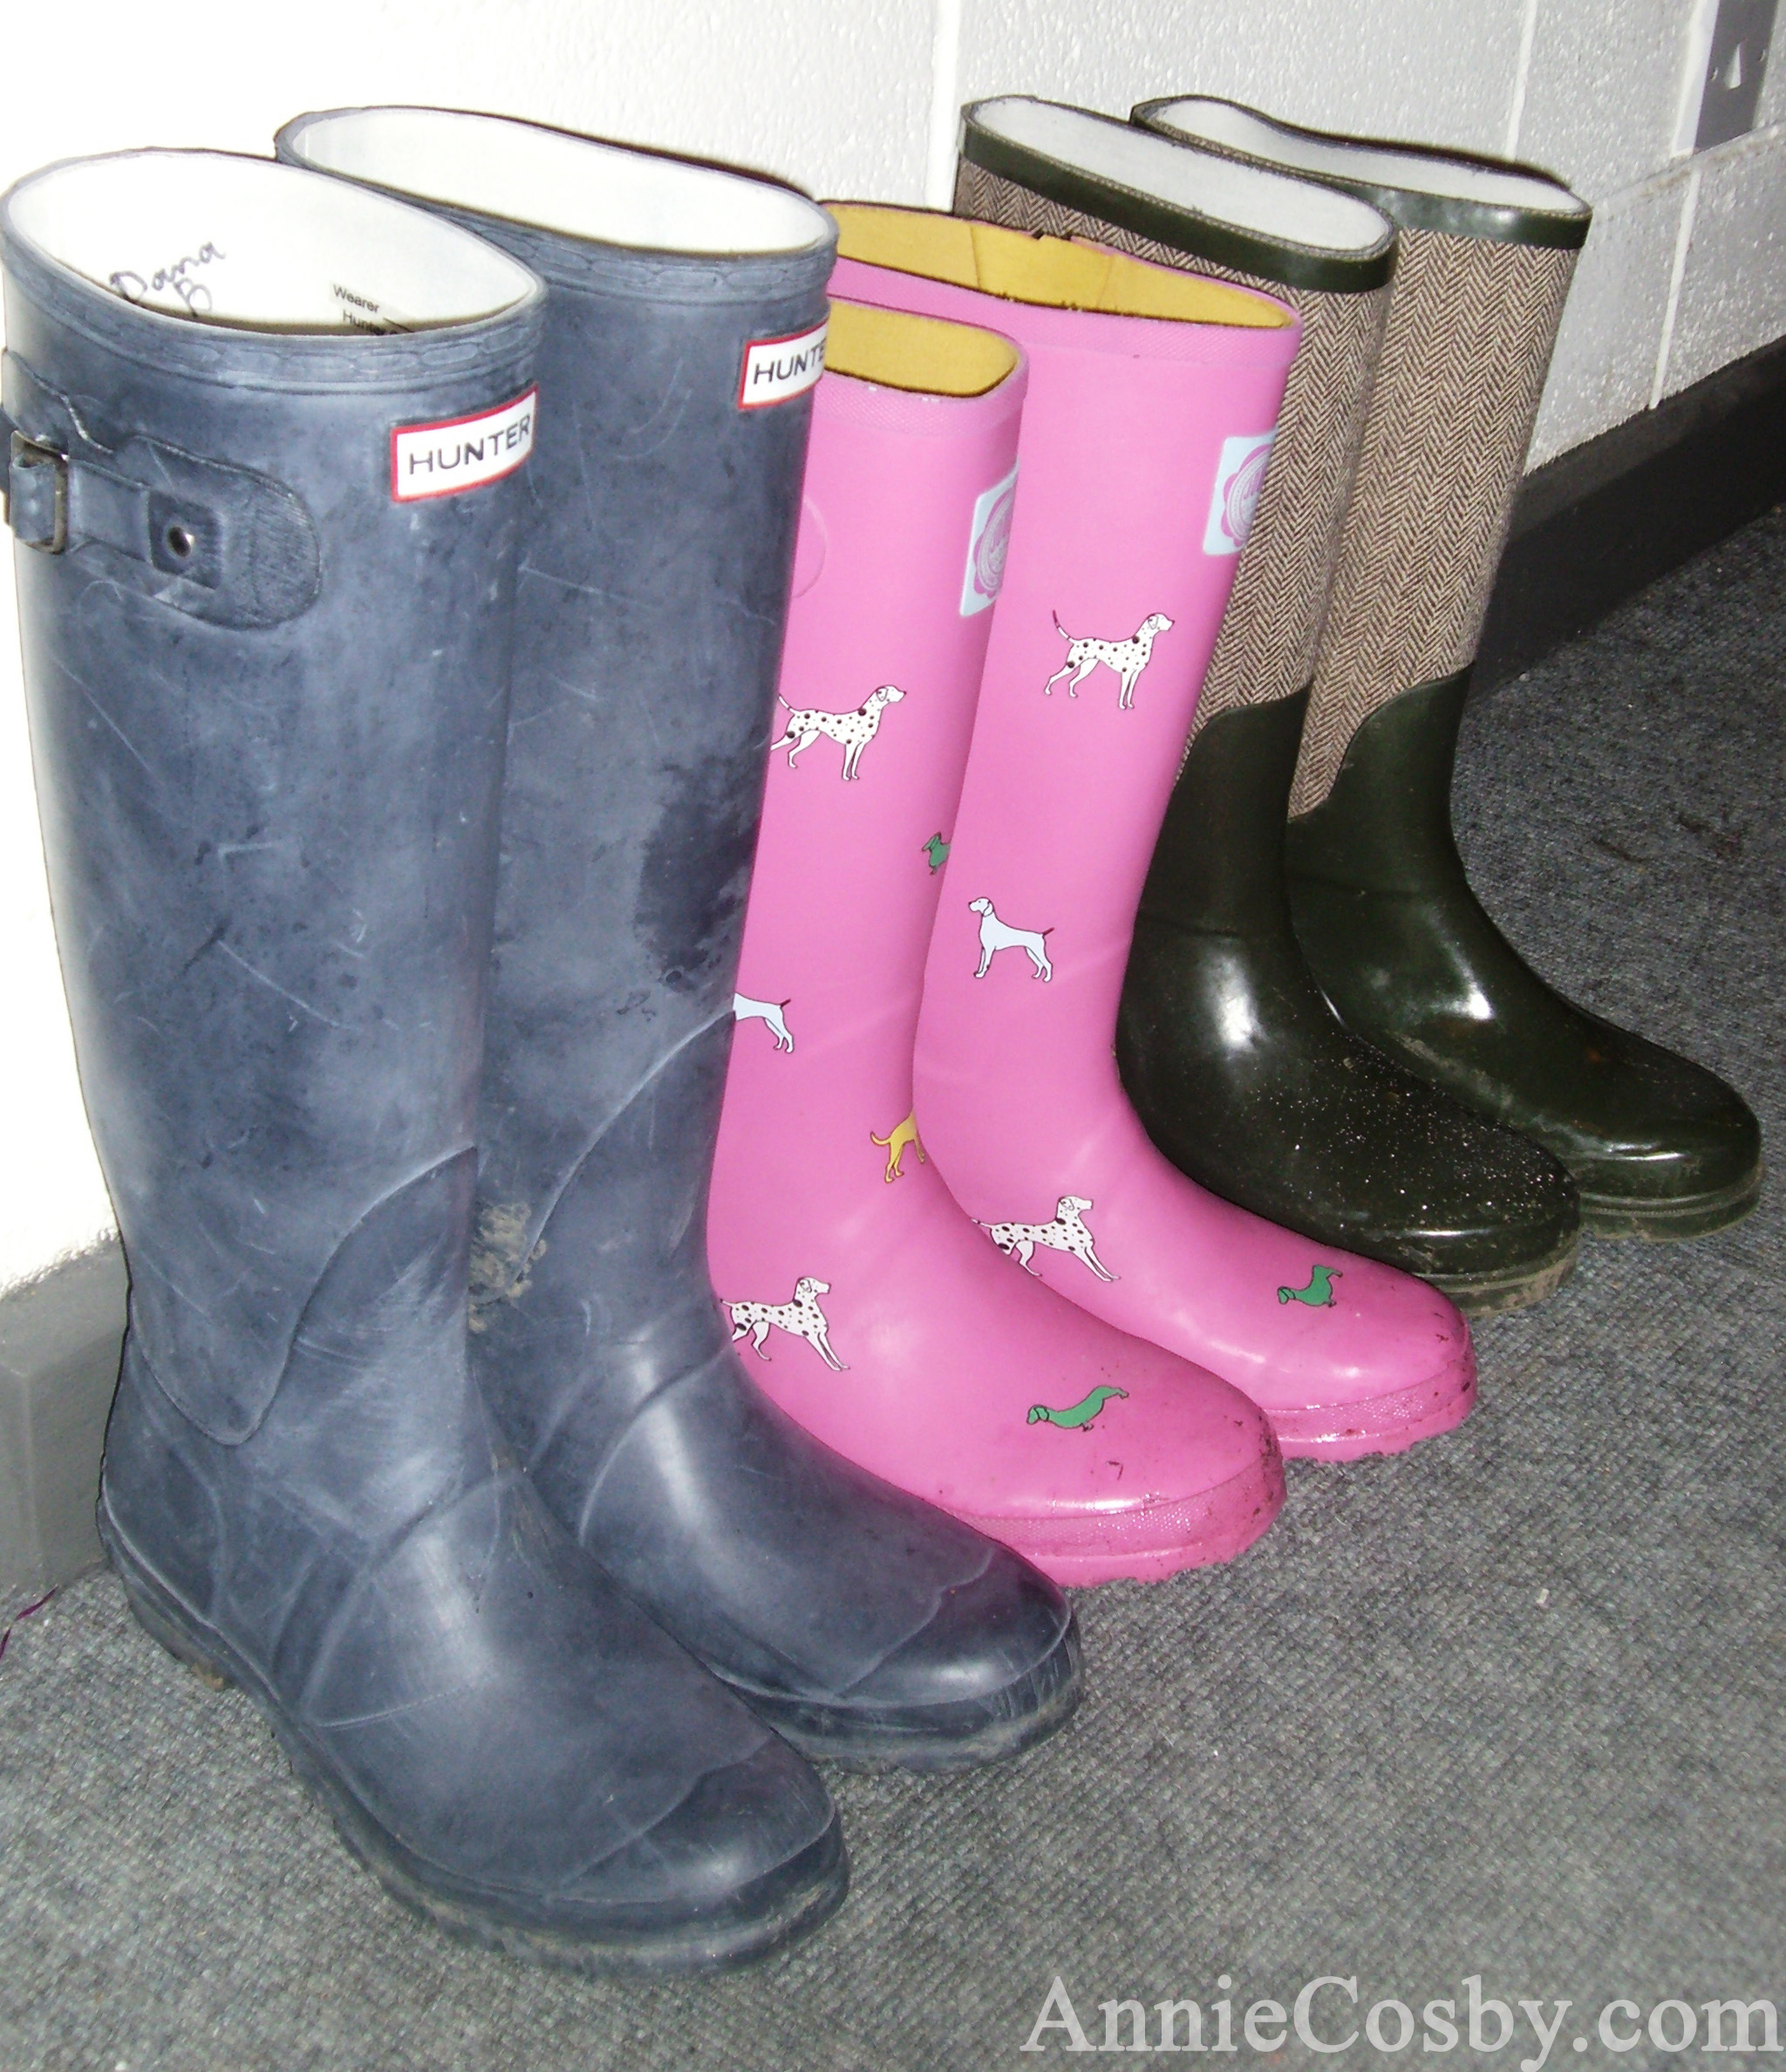 Irish wellies, Ireland